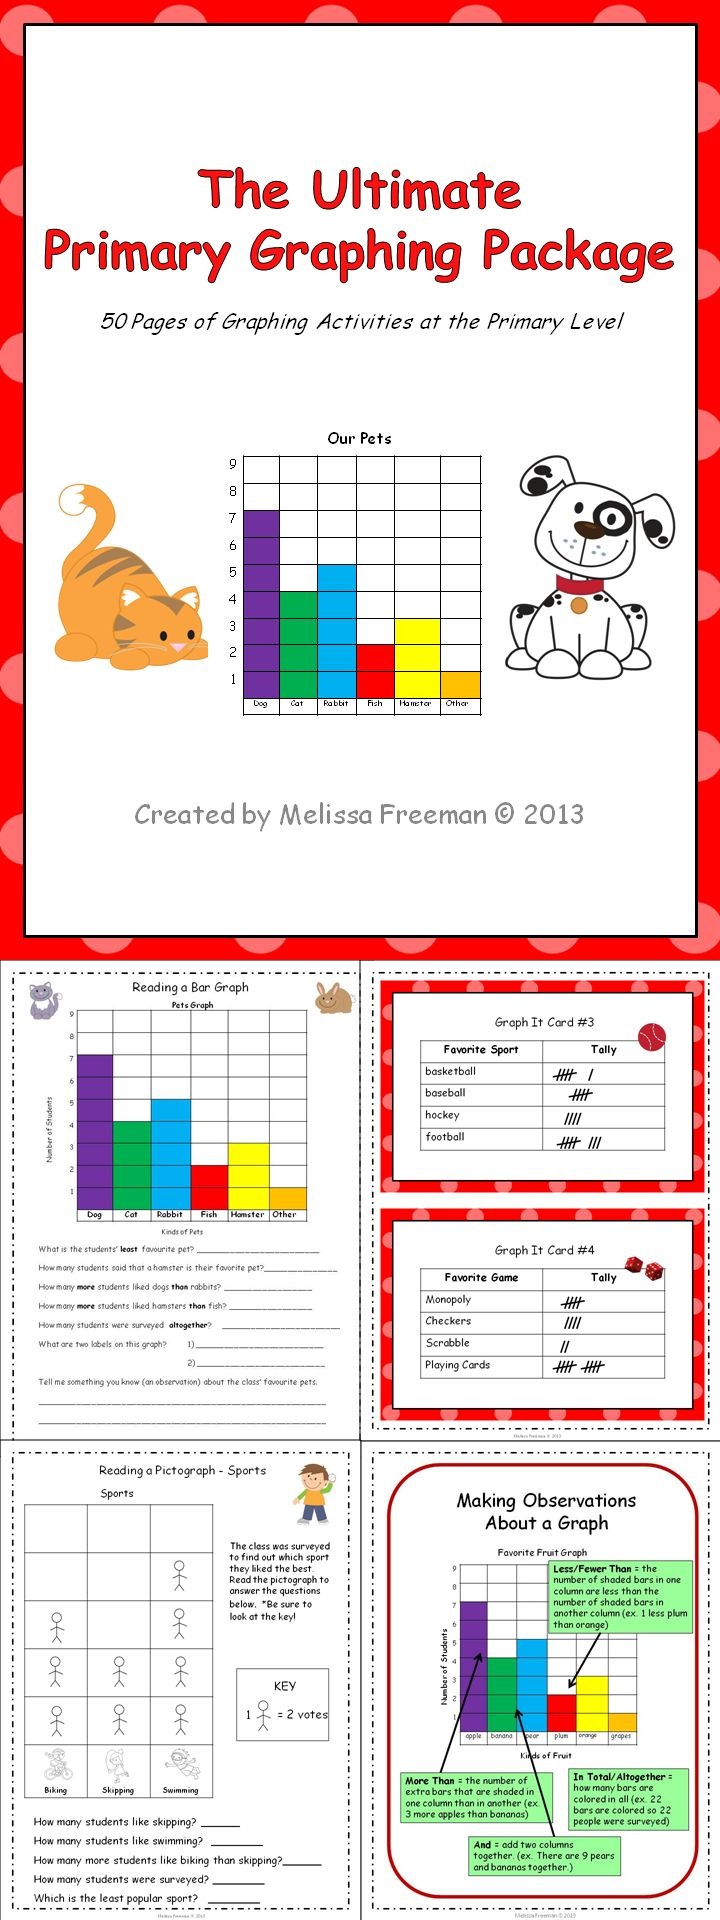 444 best 2ND GRADE images on Pinterest | School, Teaching ideas and ...